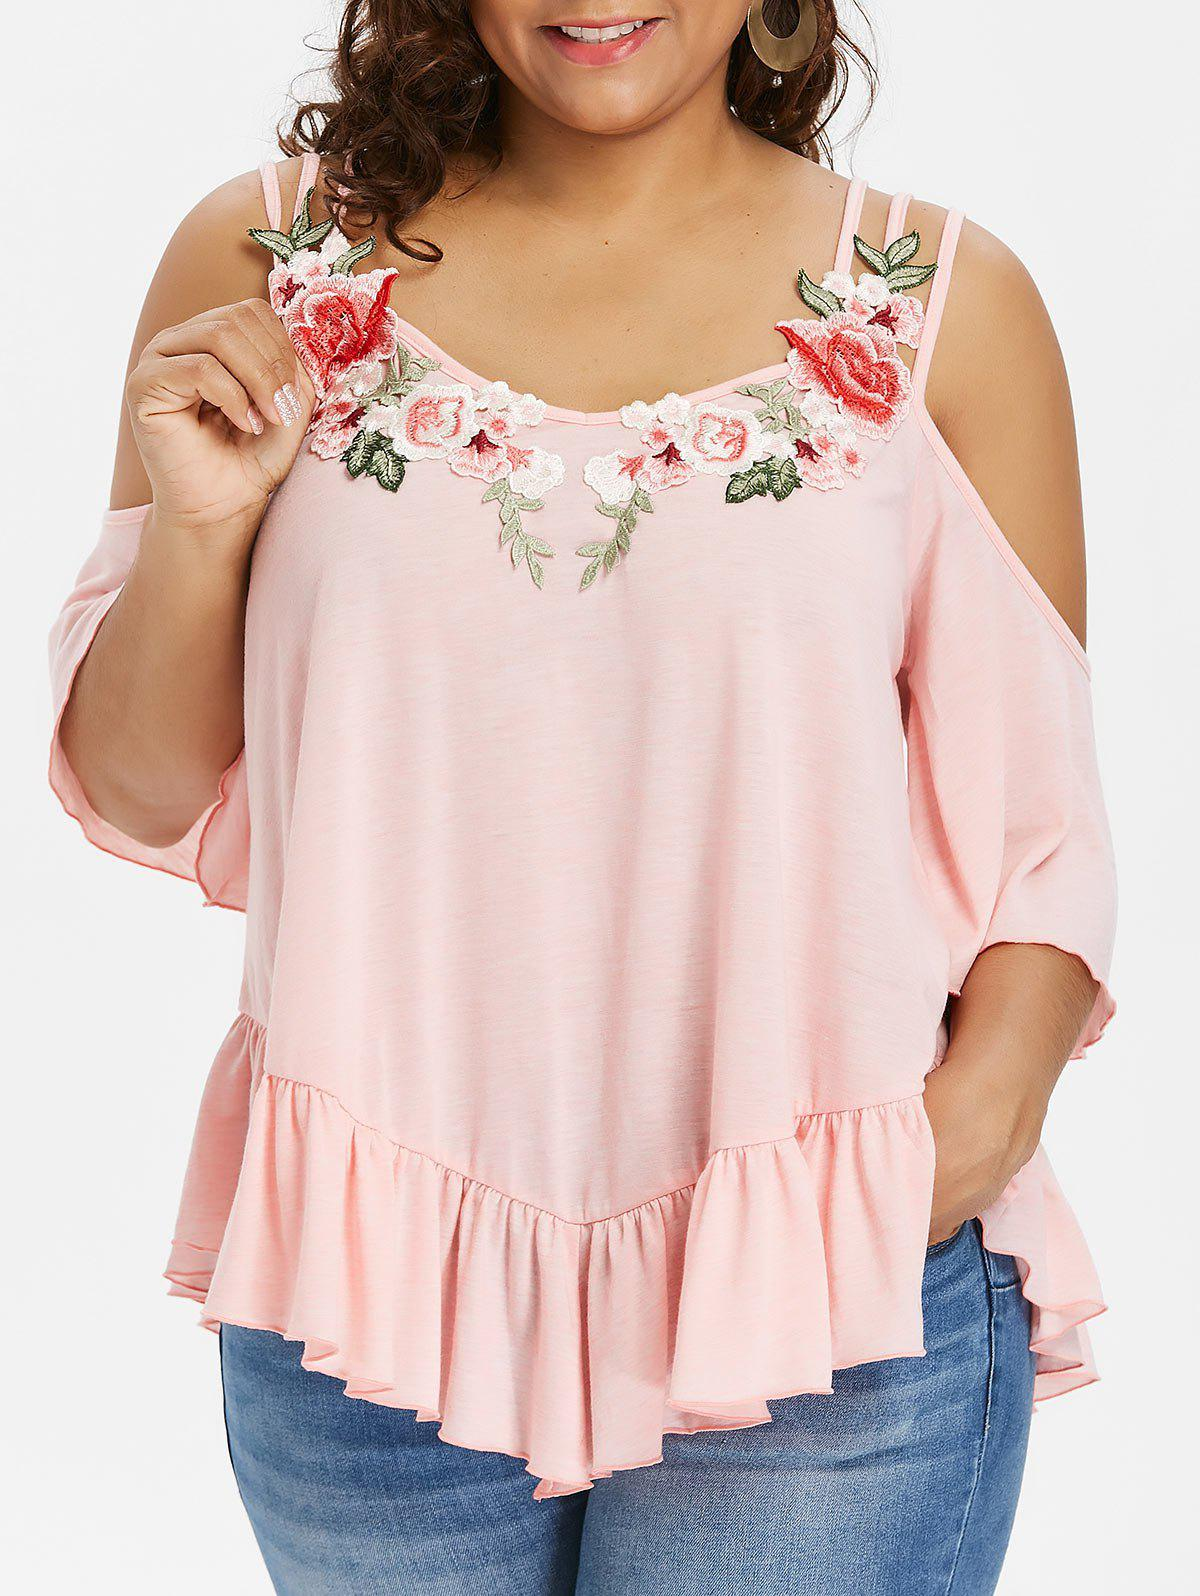 Chic Rosegal Plus Size Cold Shoulder Strappy T-shirt